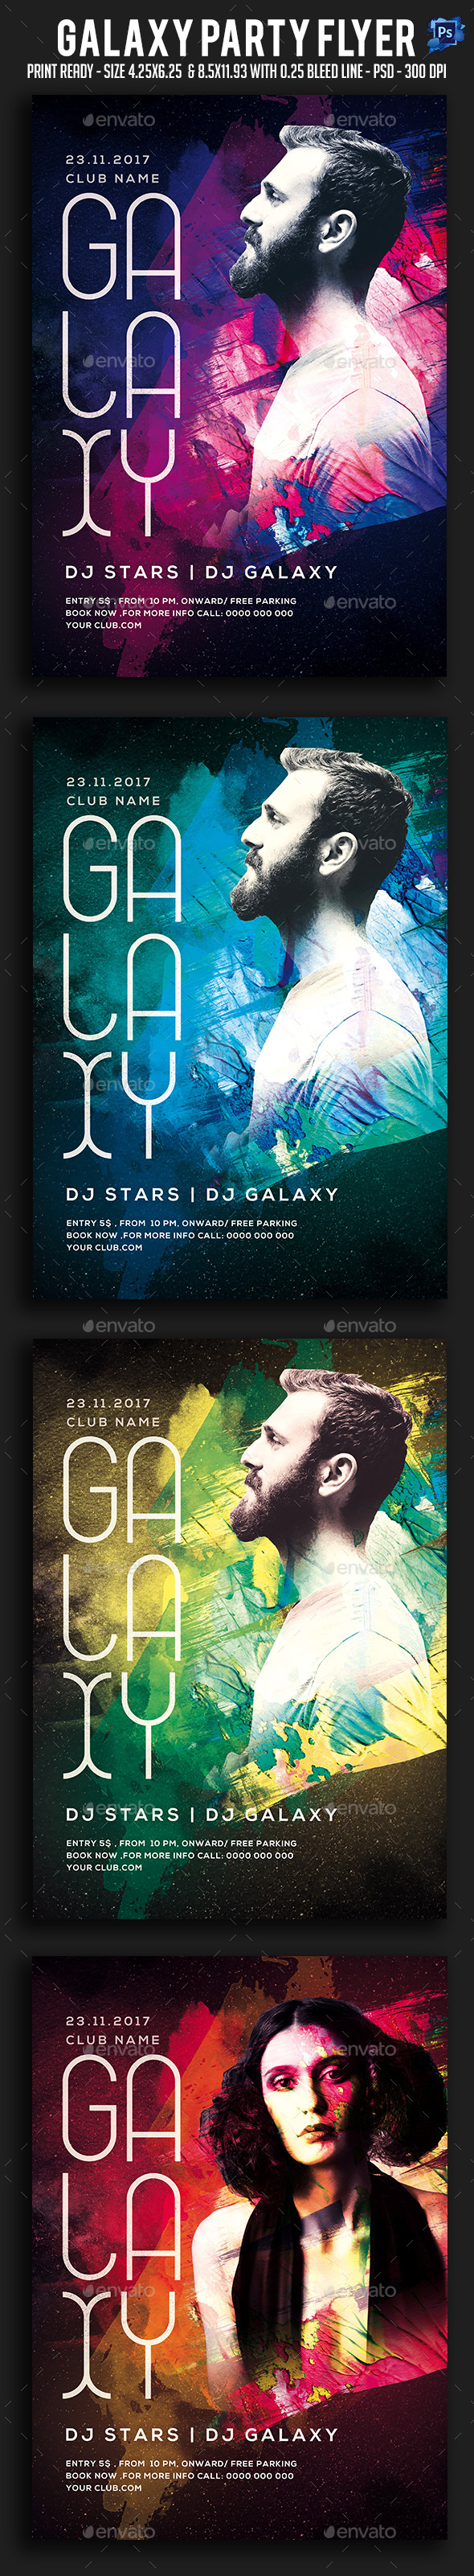 Galaxy Party Flyer - Clubs & Parties Events